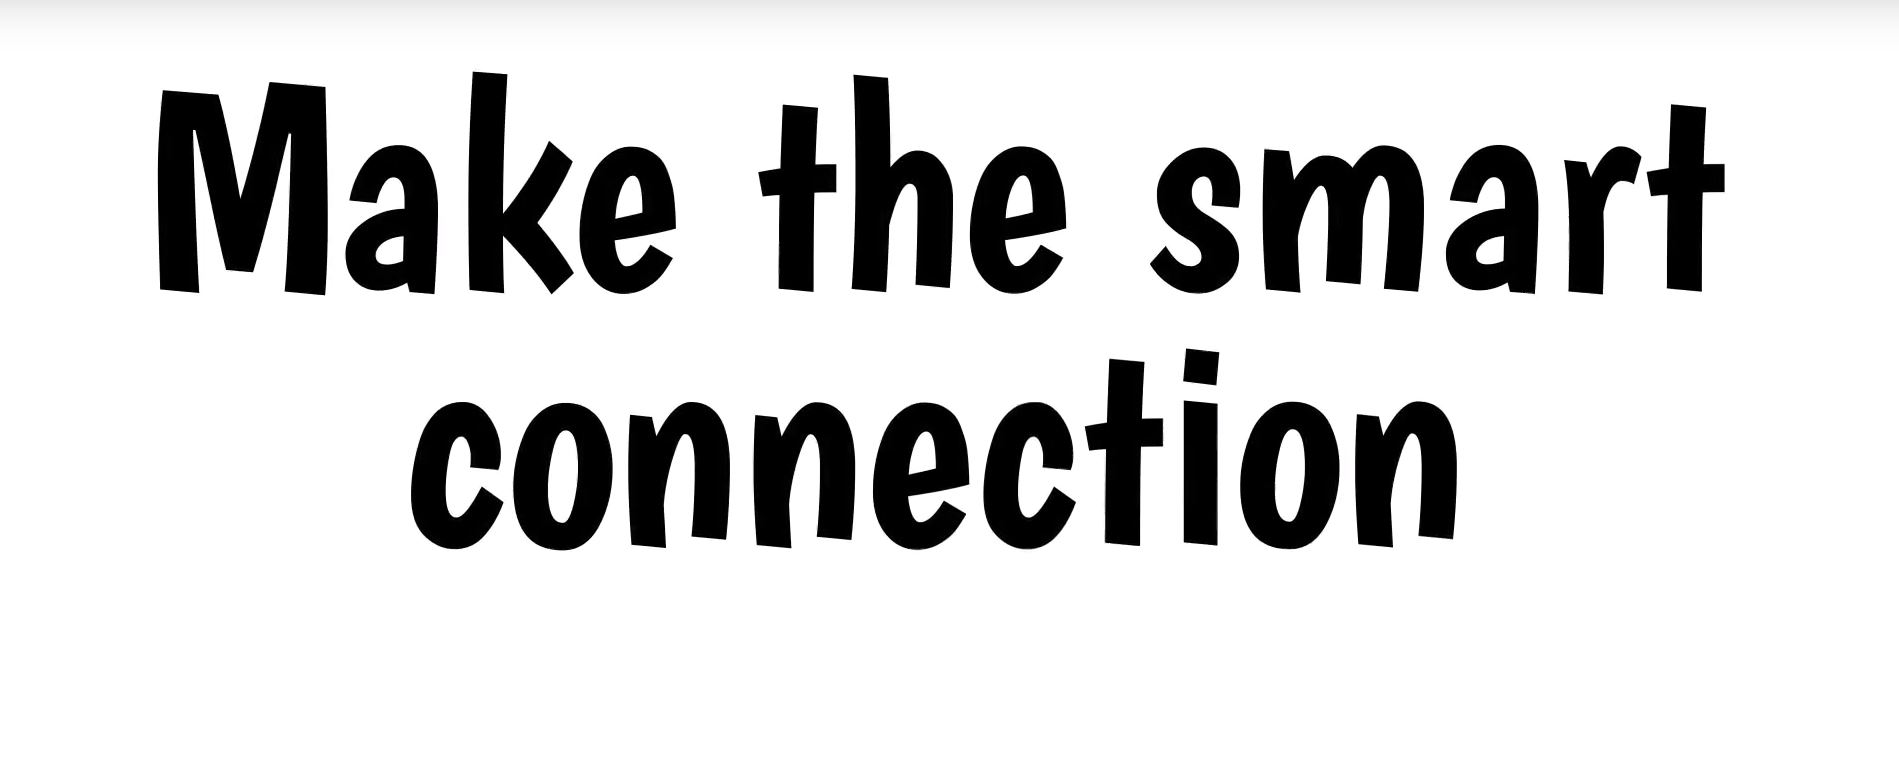 Make the smart connection